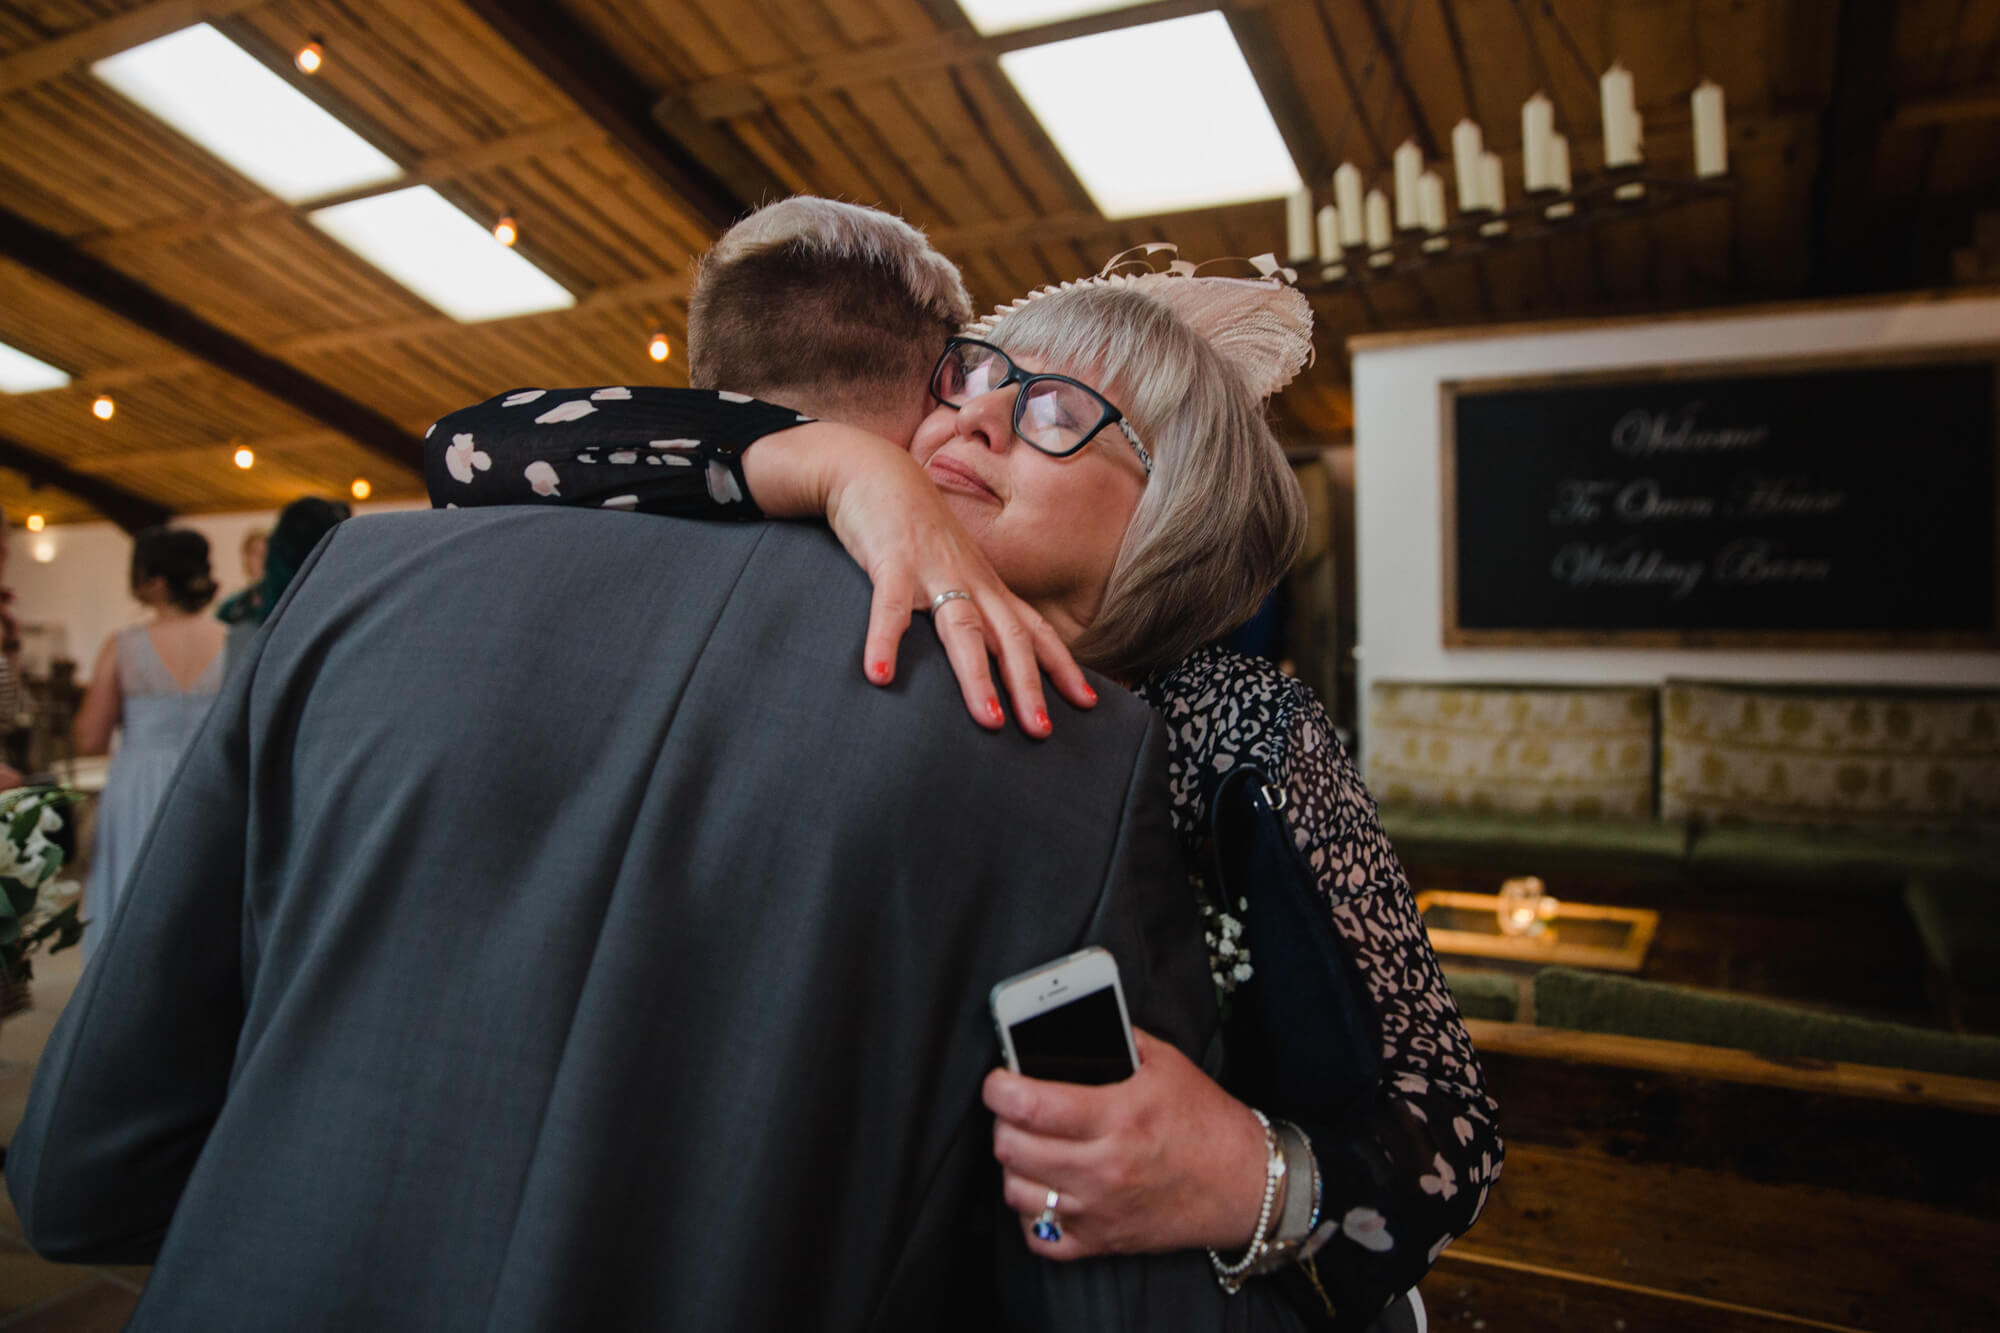 mother of groom shares intimate hug in candid photograph